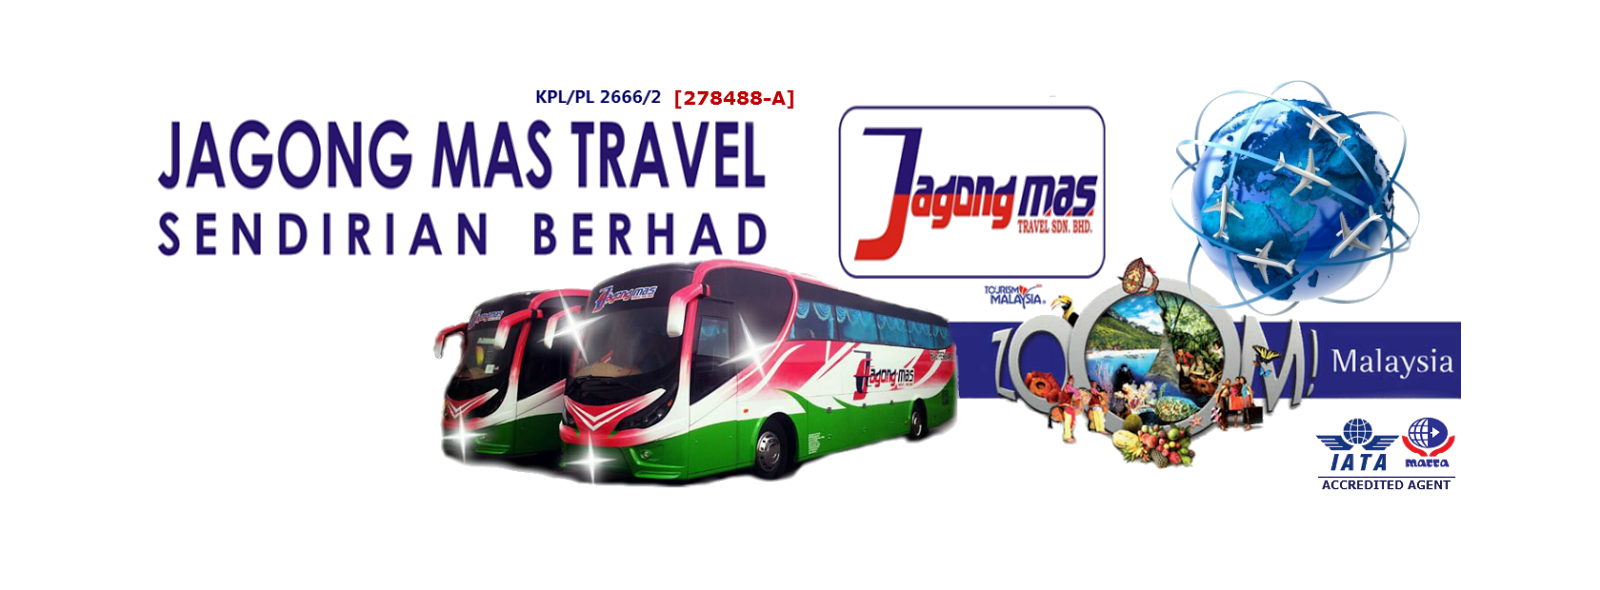 Jagong Mas Travel